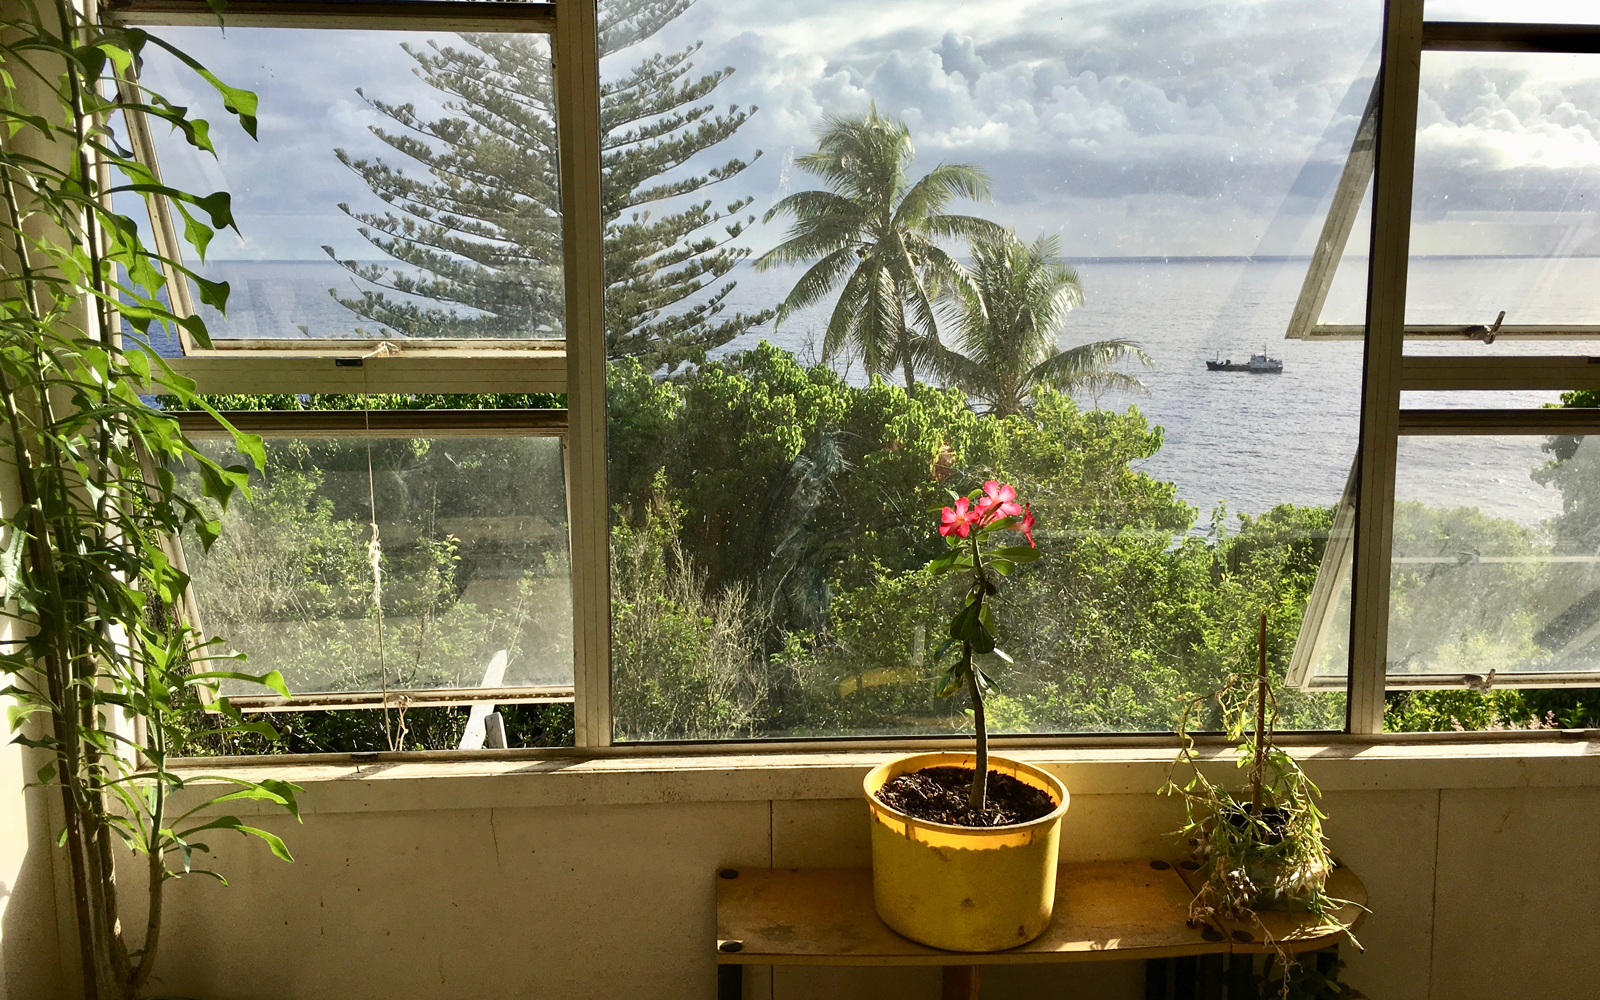 What It's Like to Stay at the Most Remote Airbnb in the World